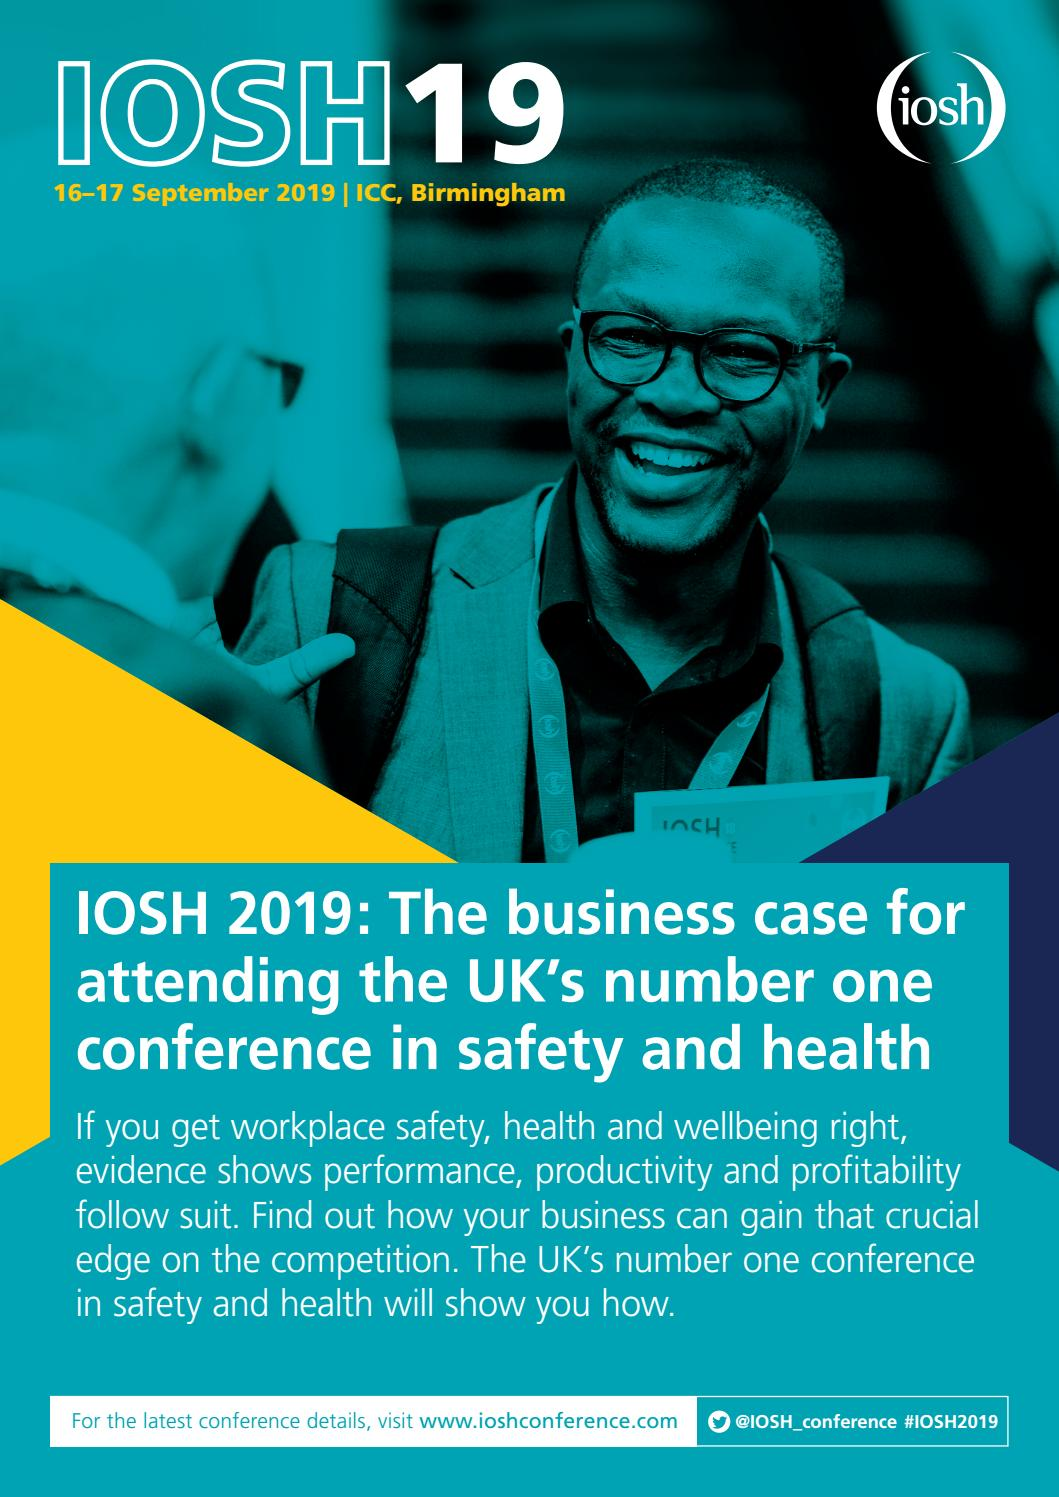 IOSH 2019: The Business Case by IOSHNetworks - issuu